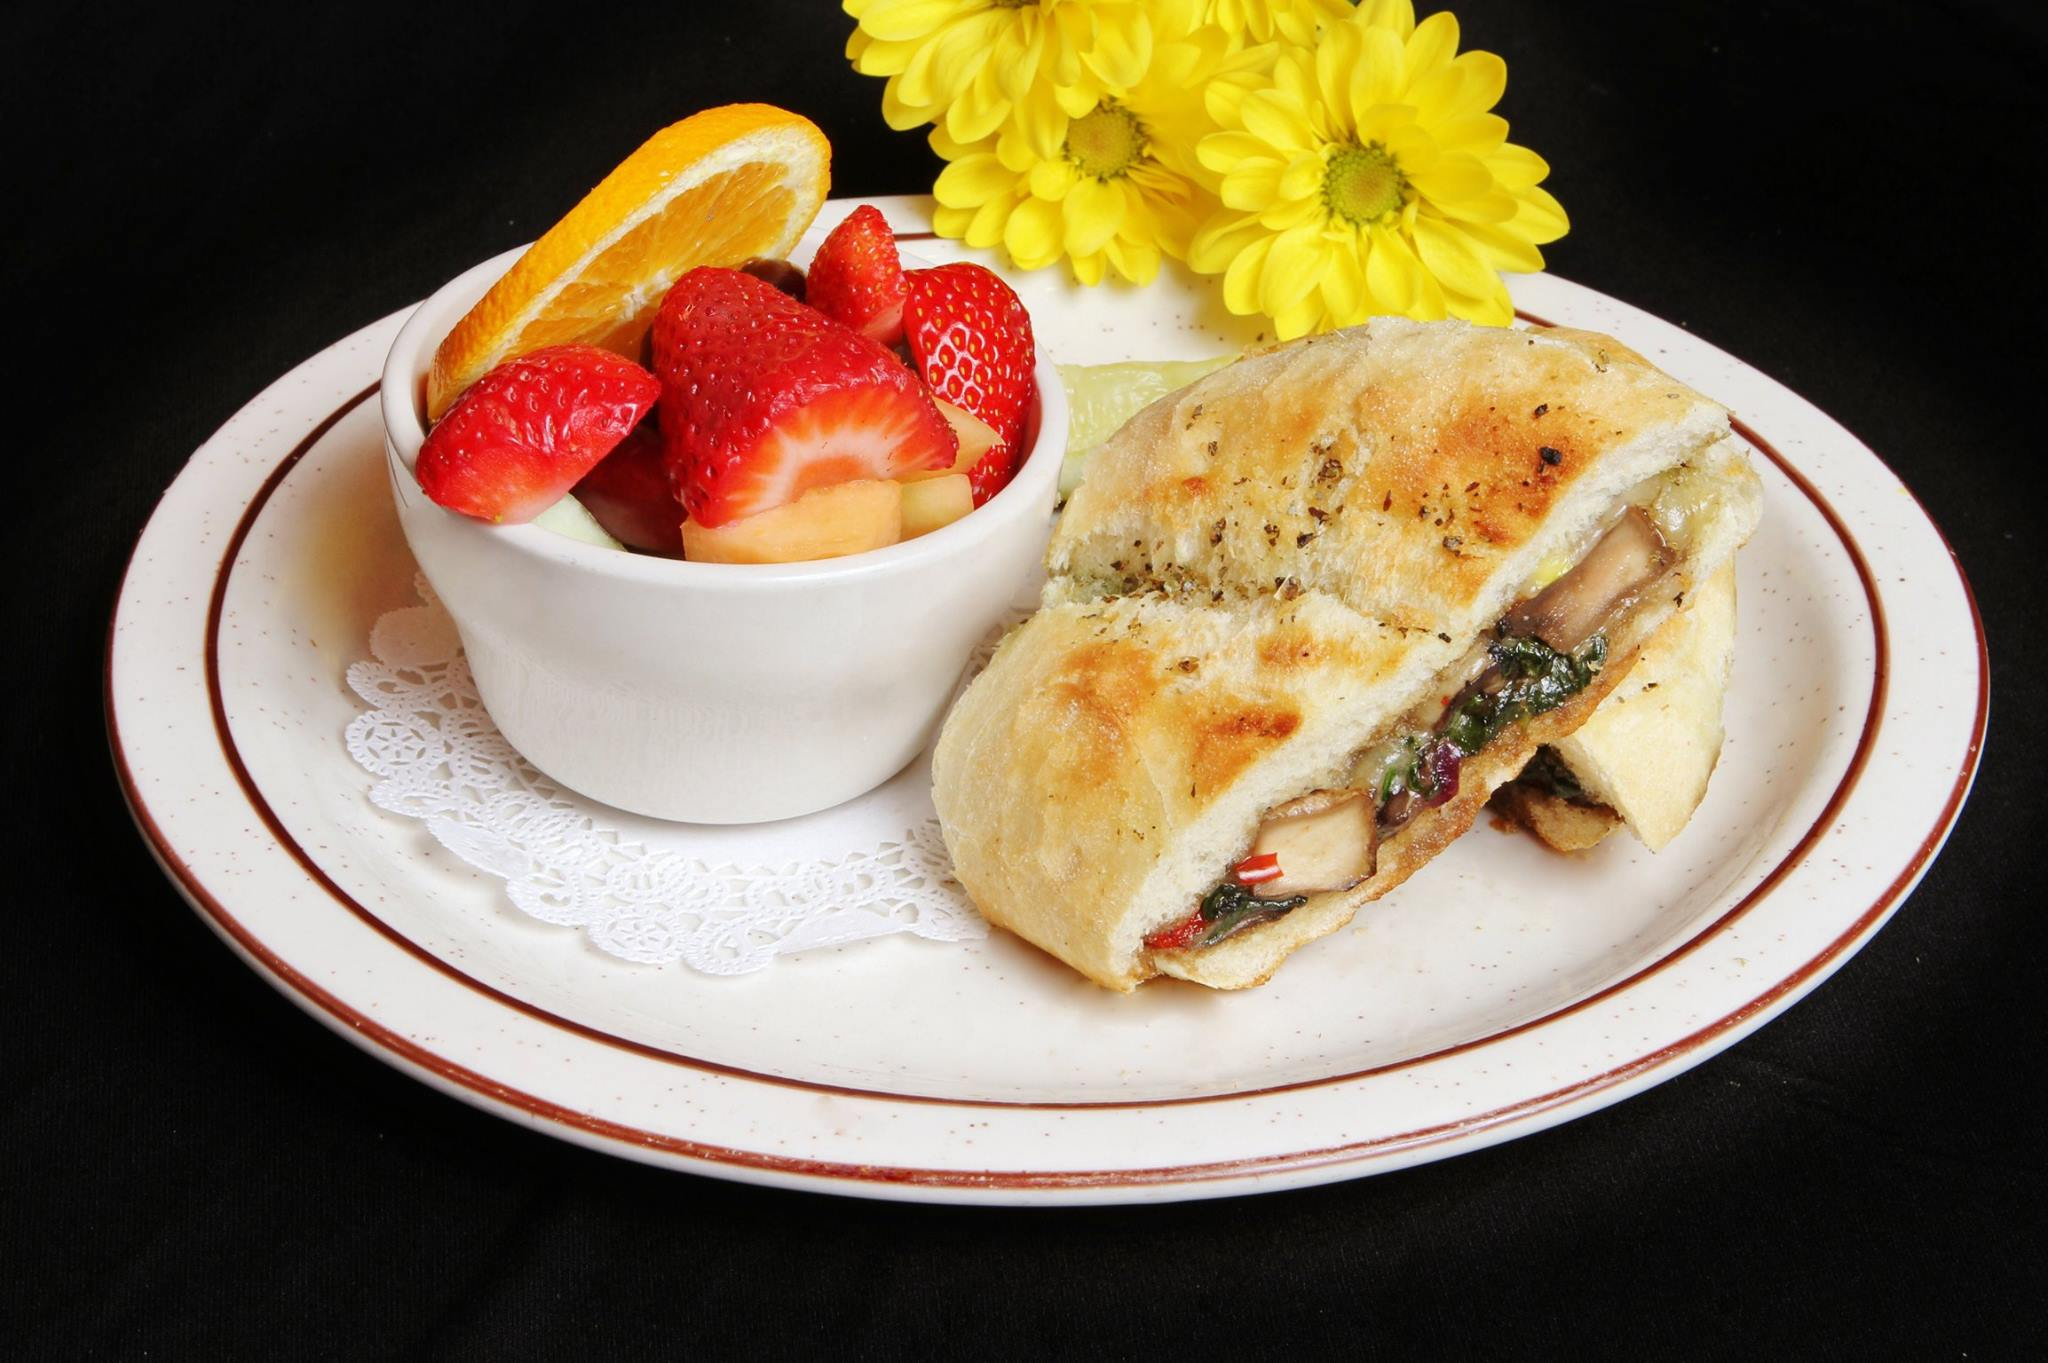 Grilled chicken panini with a bowl of sliced strawberries and oranges